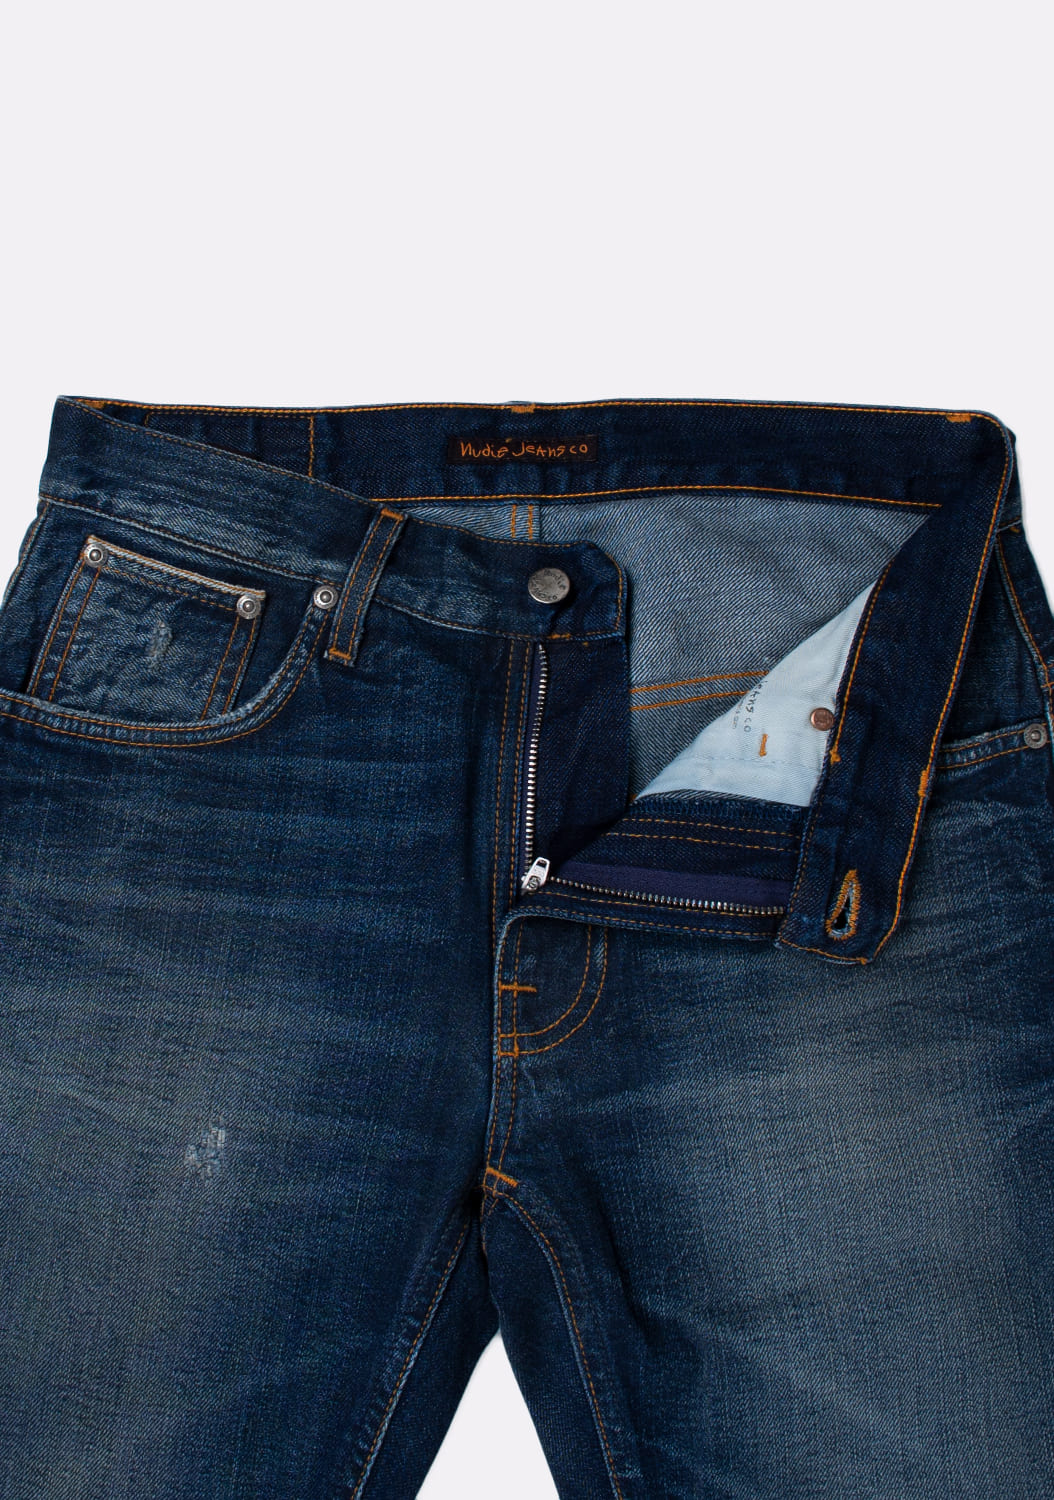 Nudie-Thin-Finn-Jonas-Replica-Selvage-Selvedge-melyni-dzinsai-dydis-31-32 (3)